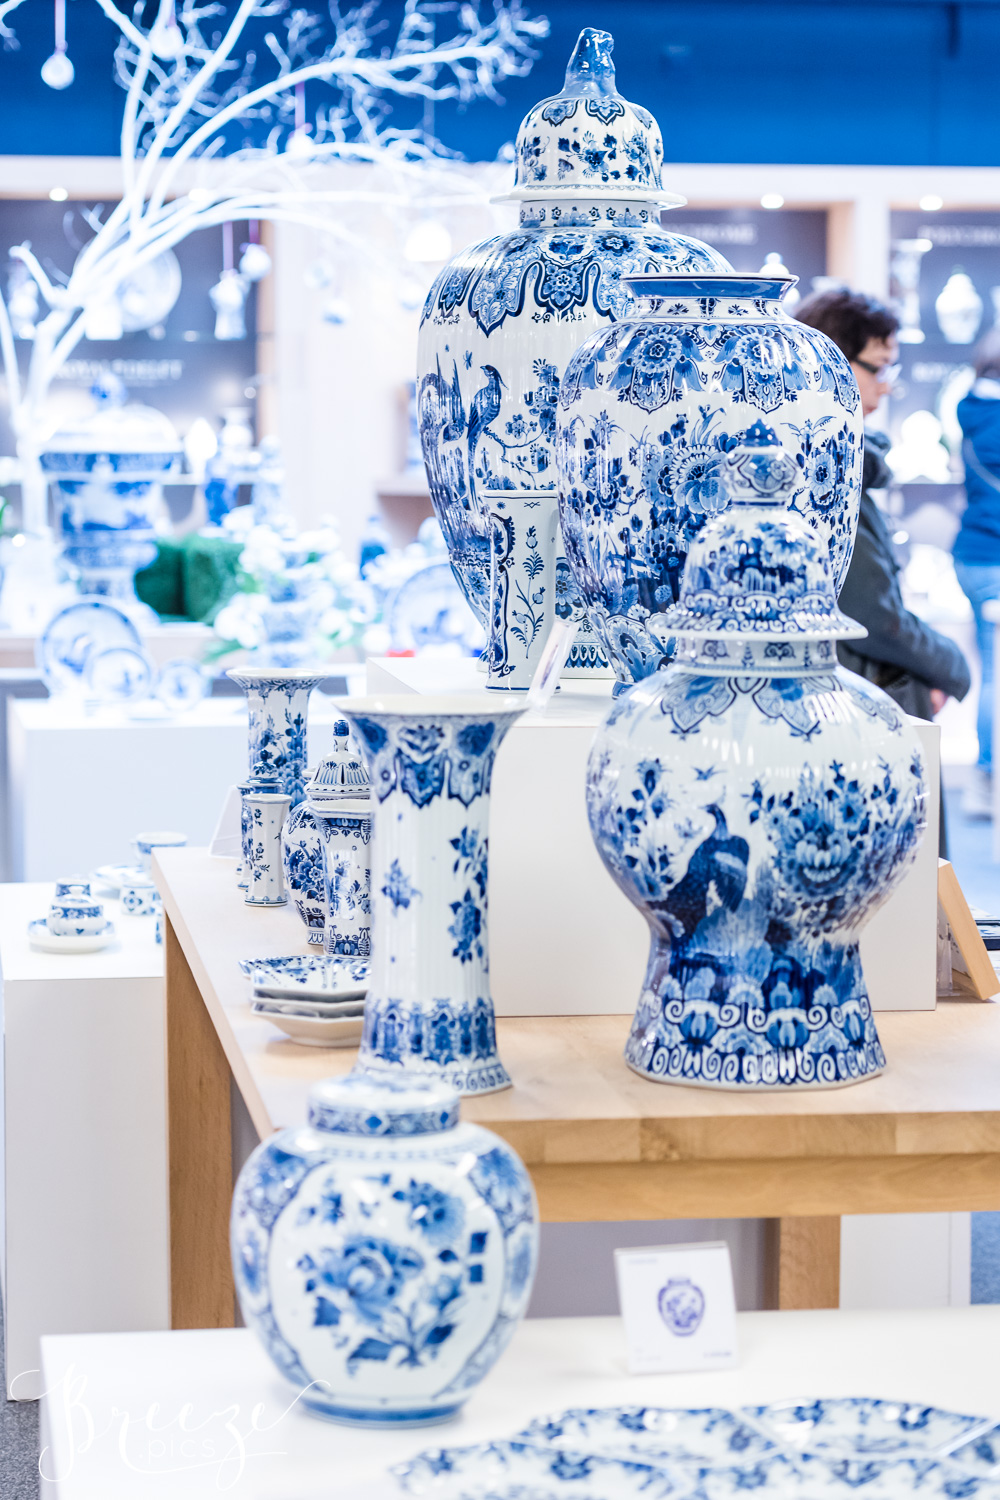 Delft Pottery Museum, Dutch Painting, Holland, Travel Photography, Breeze Pics